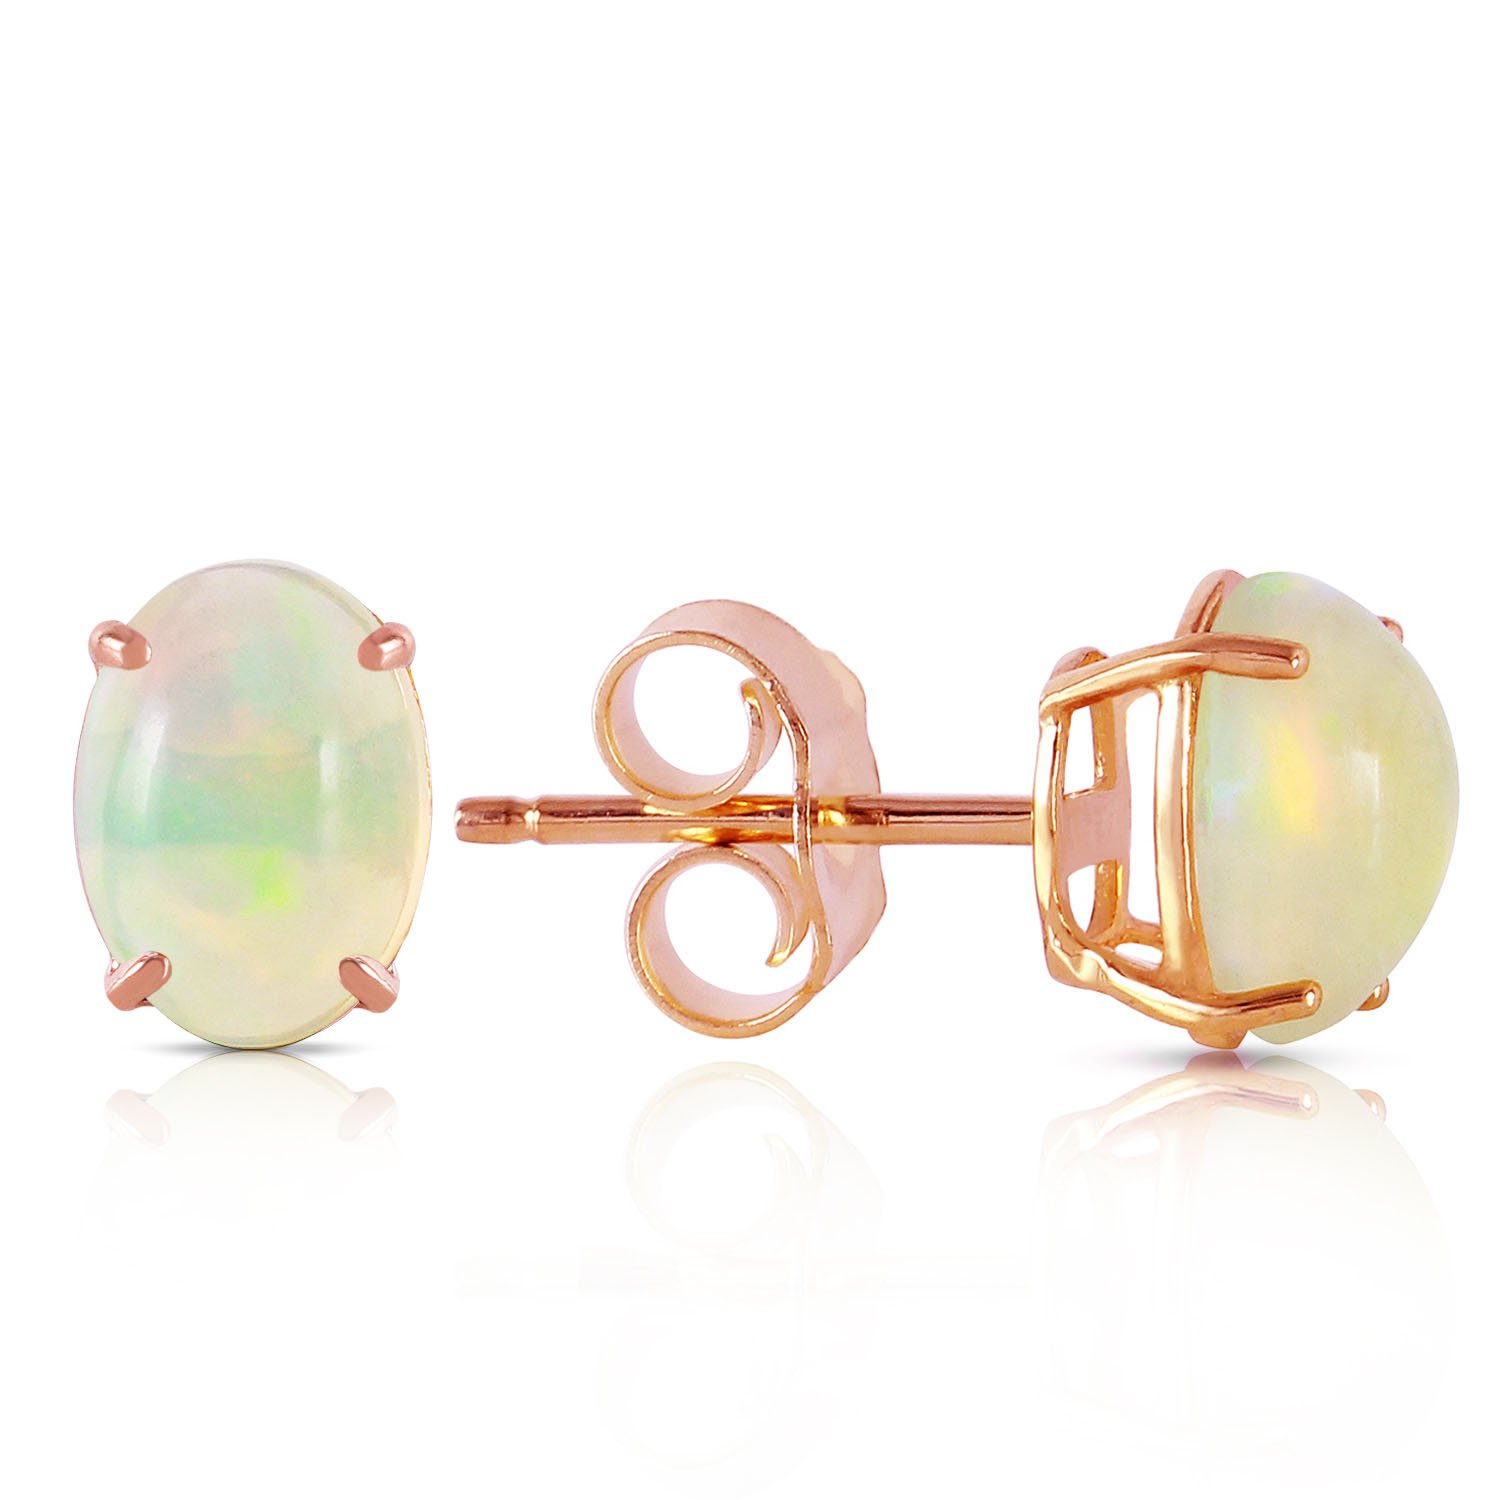 14K Solid Rose Gold Stud Earrings with Natural Opals